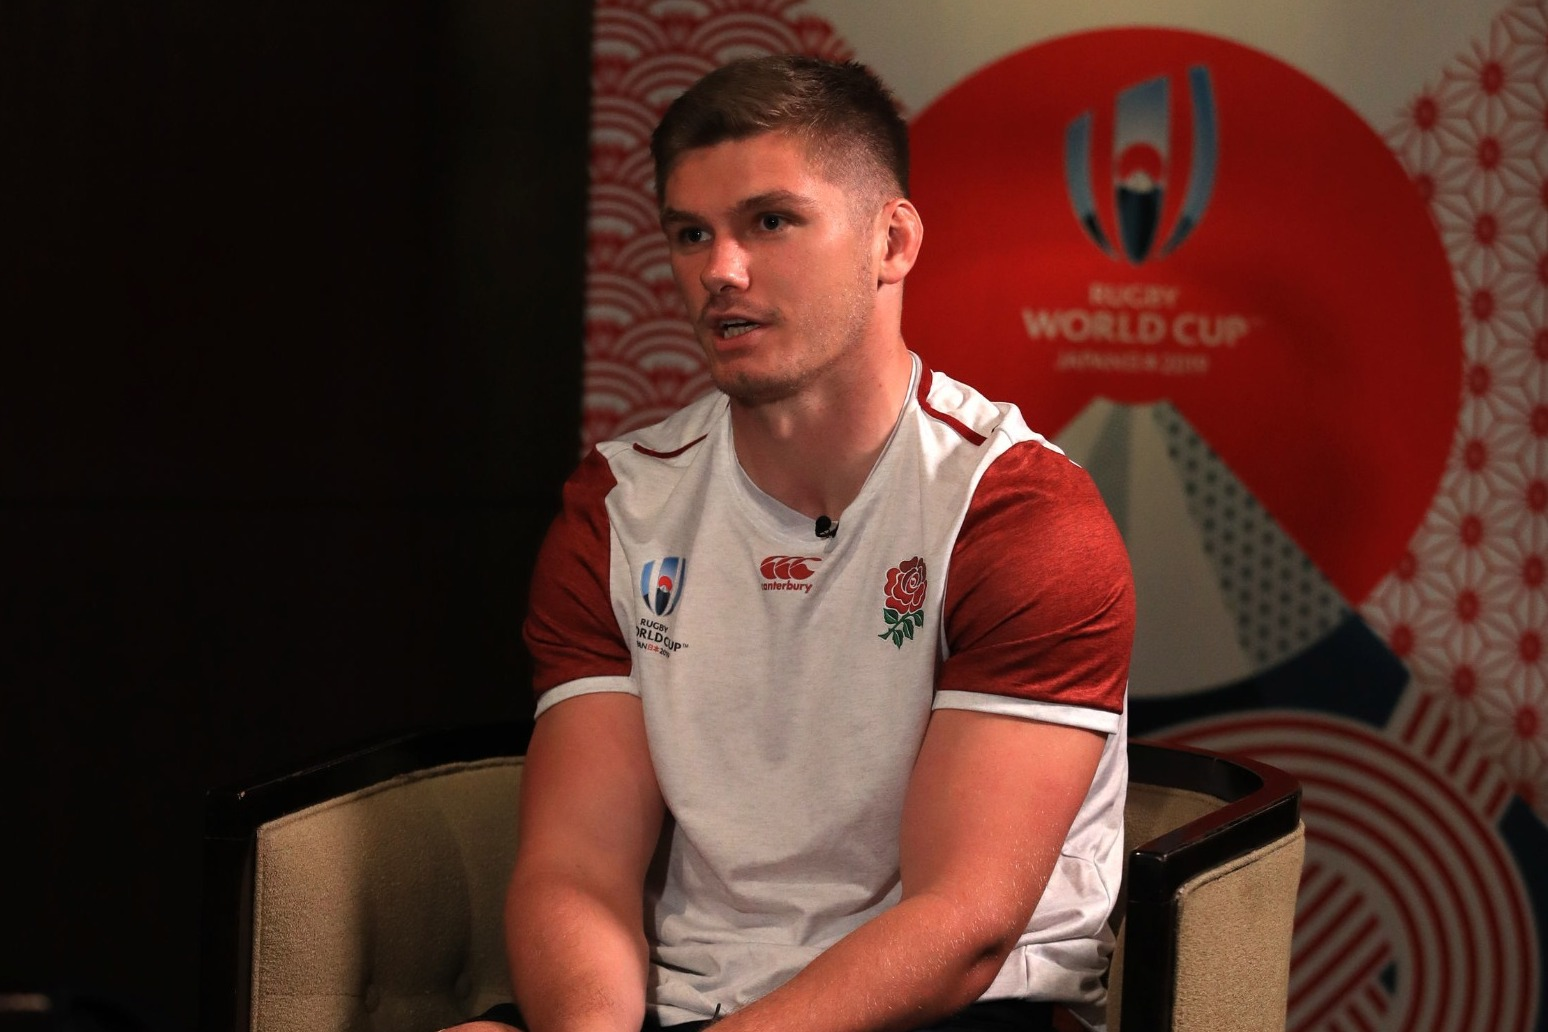 ENGLAND WILL PLAY WITH NO FEAR IN RUGBY WORLD CUP FINAL, SAYS JONES